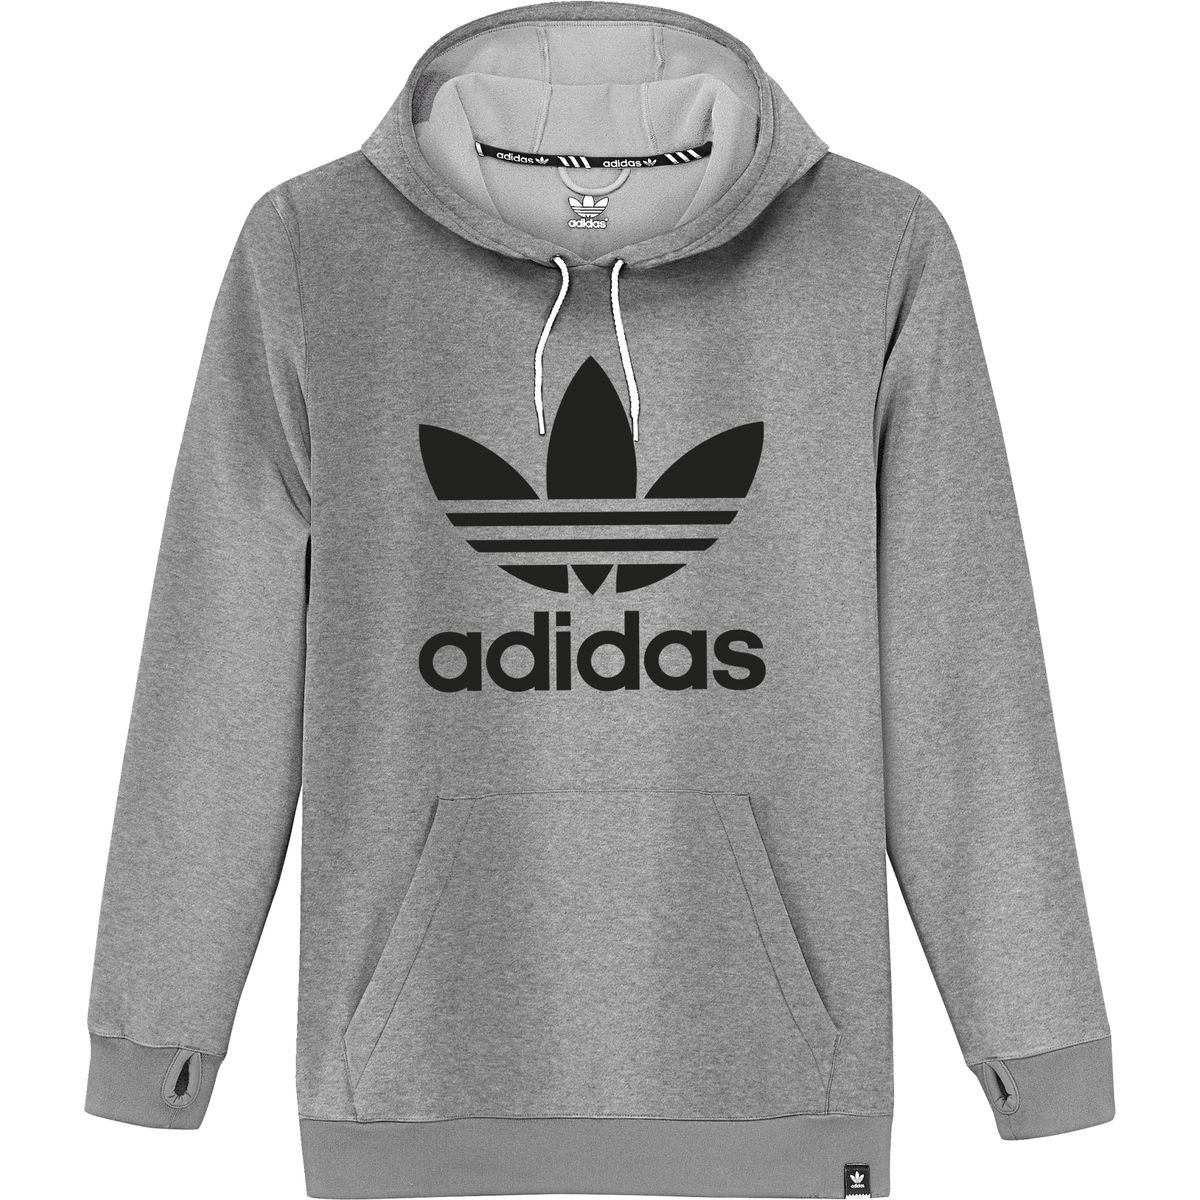 White Adidas Hoodie,Adidas Neo Trainers Kids >Off36% Originali